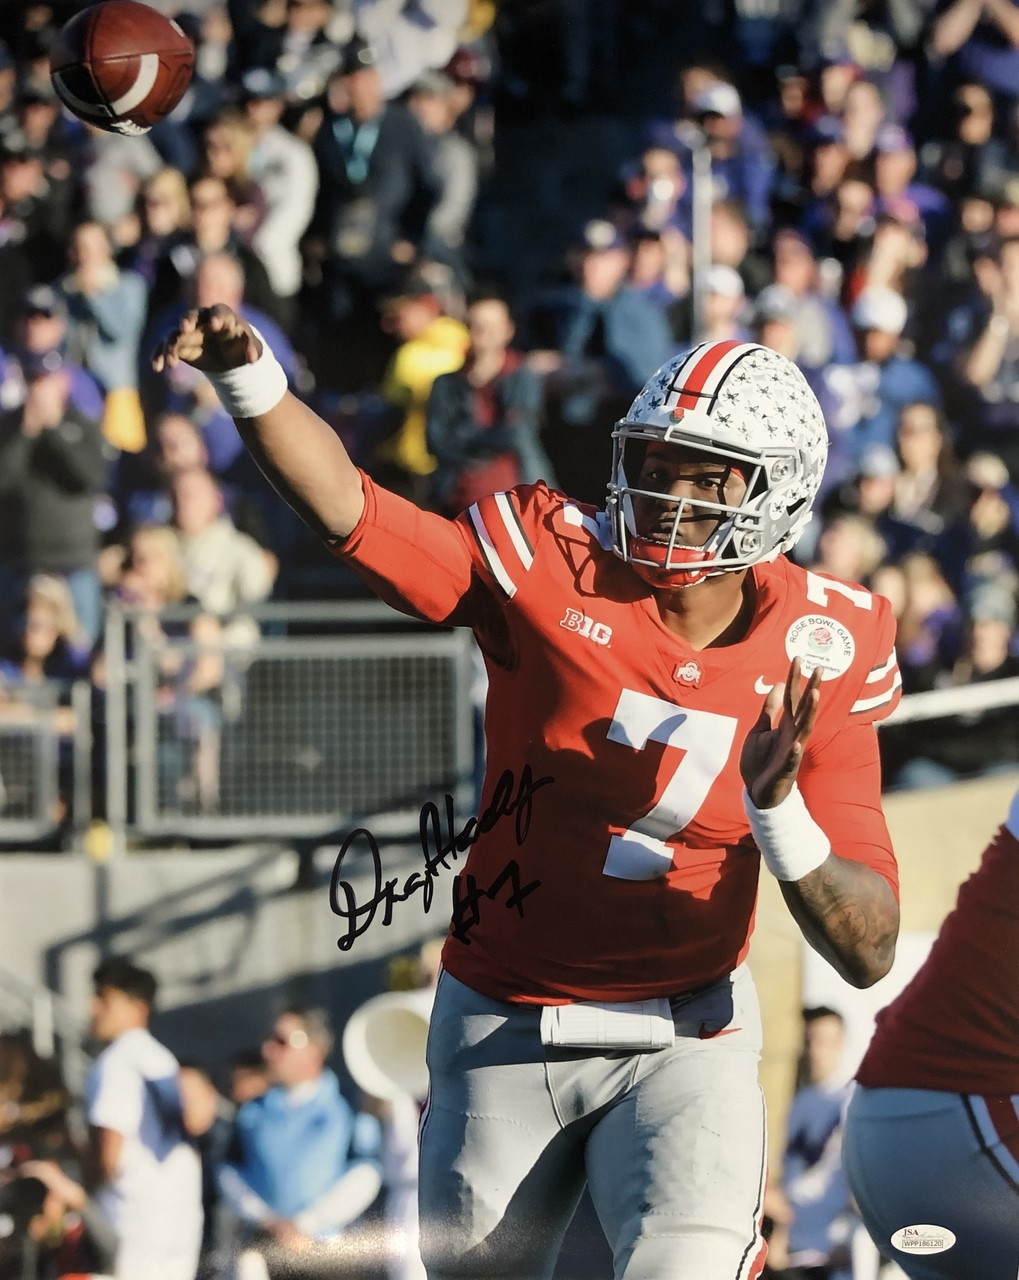 Dwayne Haskins Ohio State Buckeyes 16-2 16x20 Autographed Photo - Certified Authentic